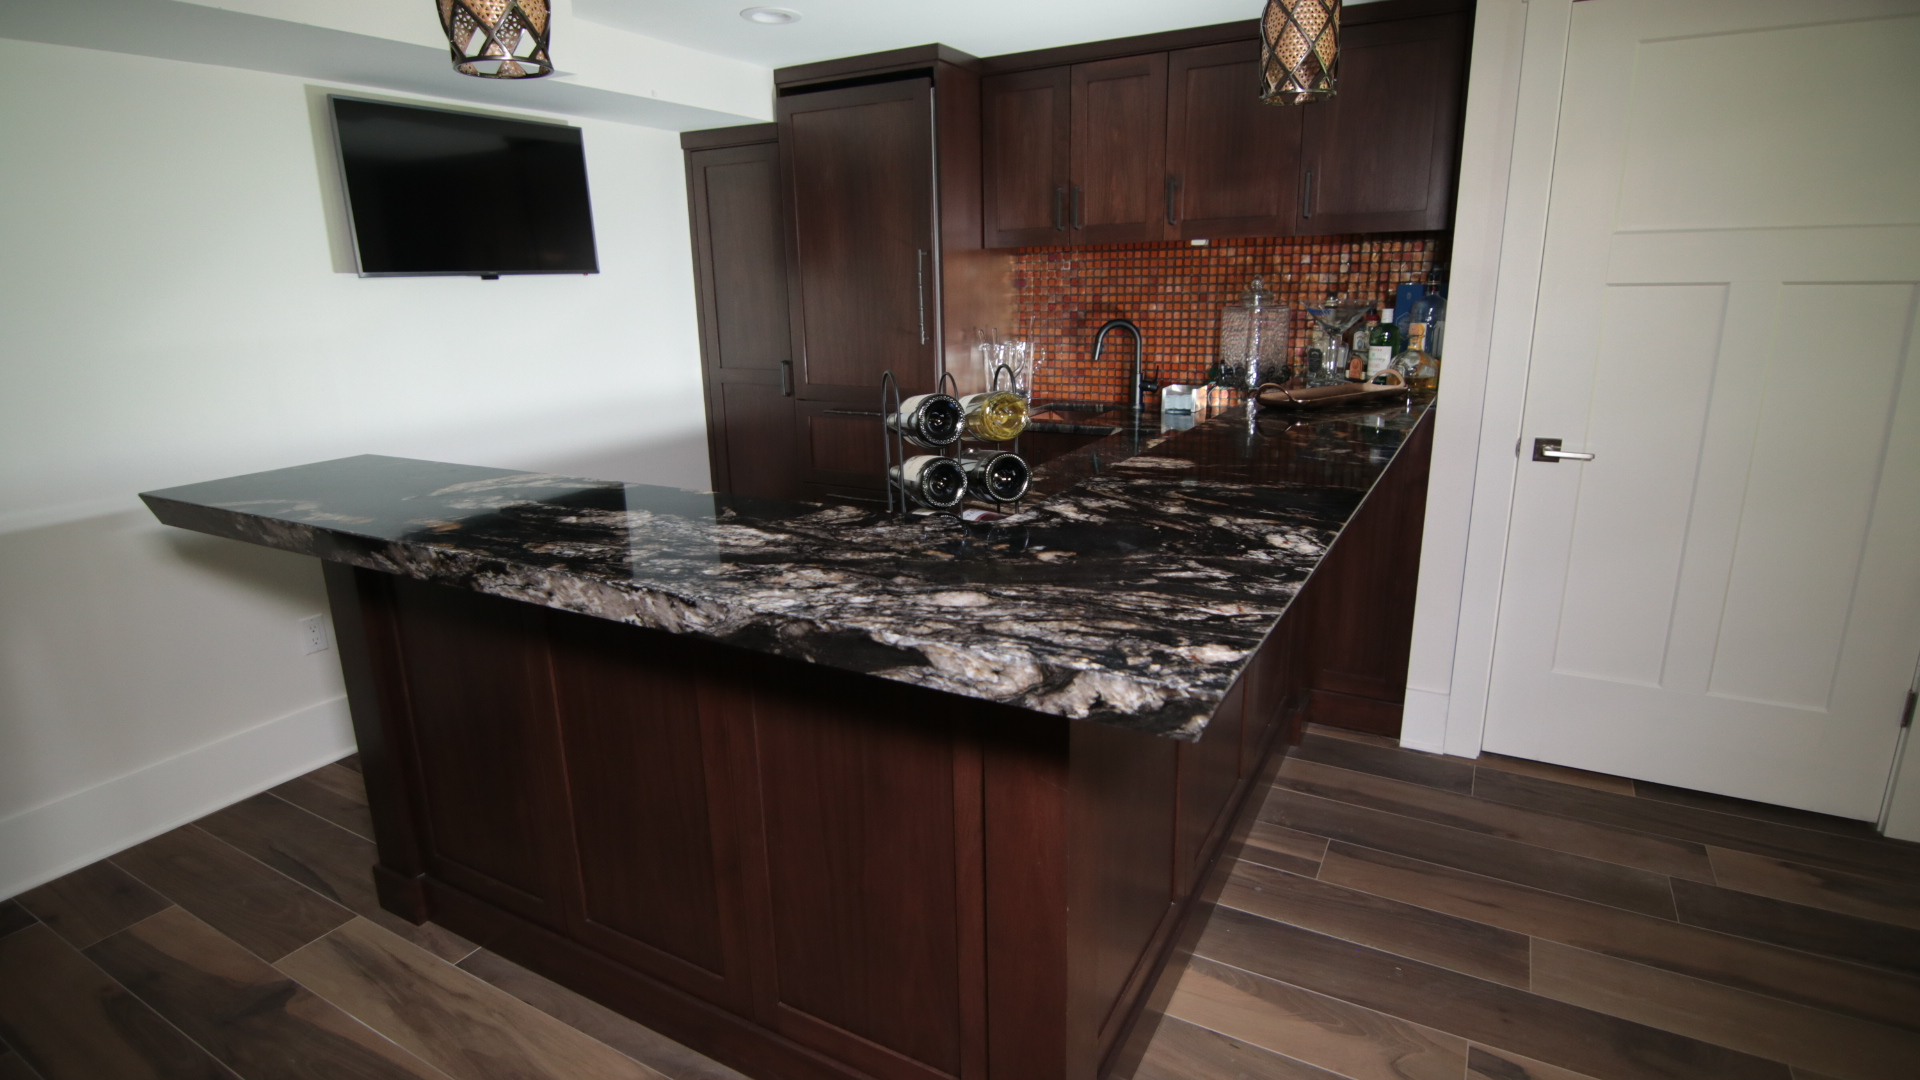 remodeling countertop countertops custom houston kitchen renovations and bathroom services